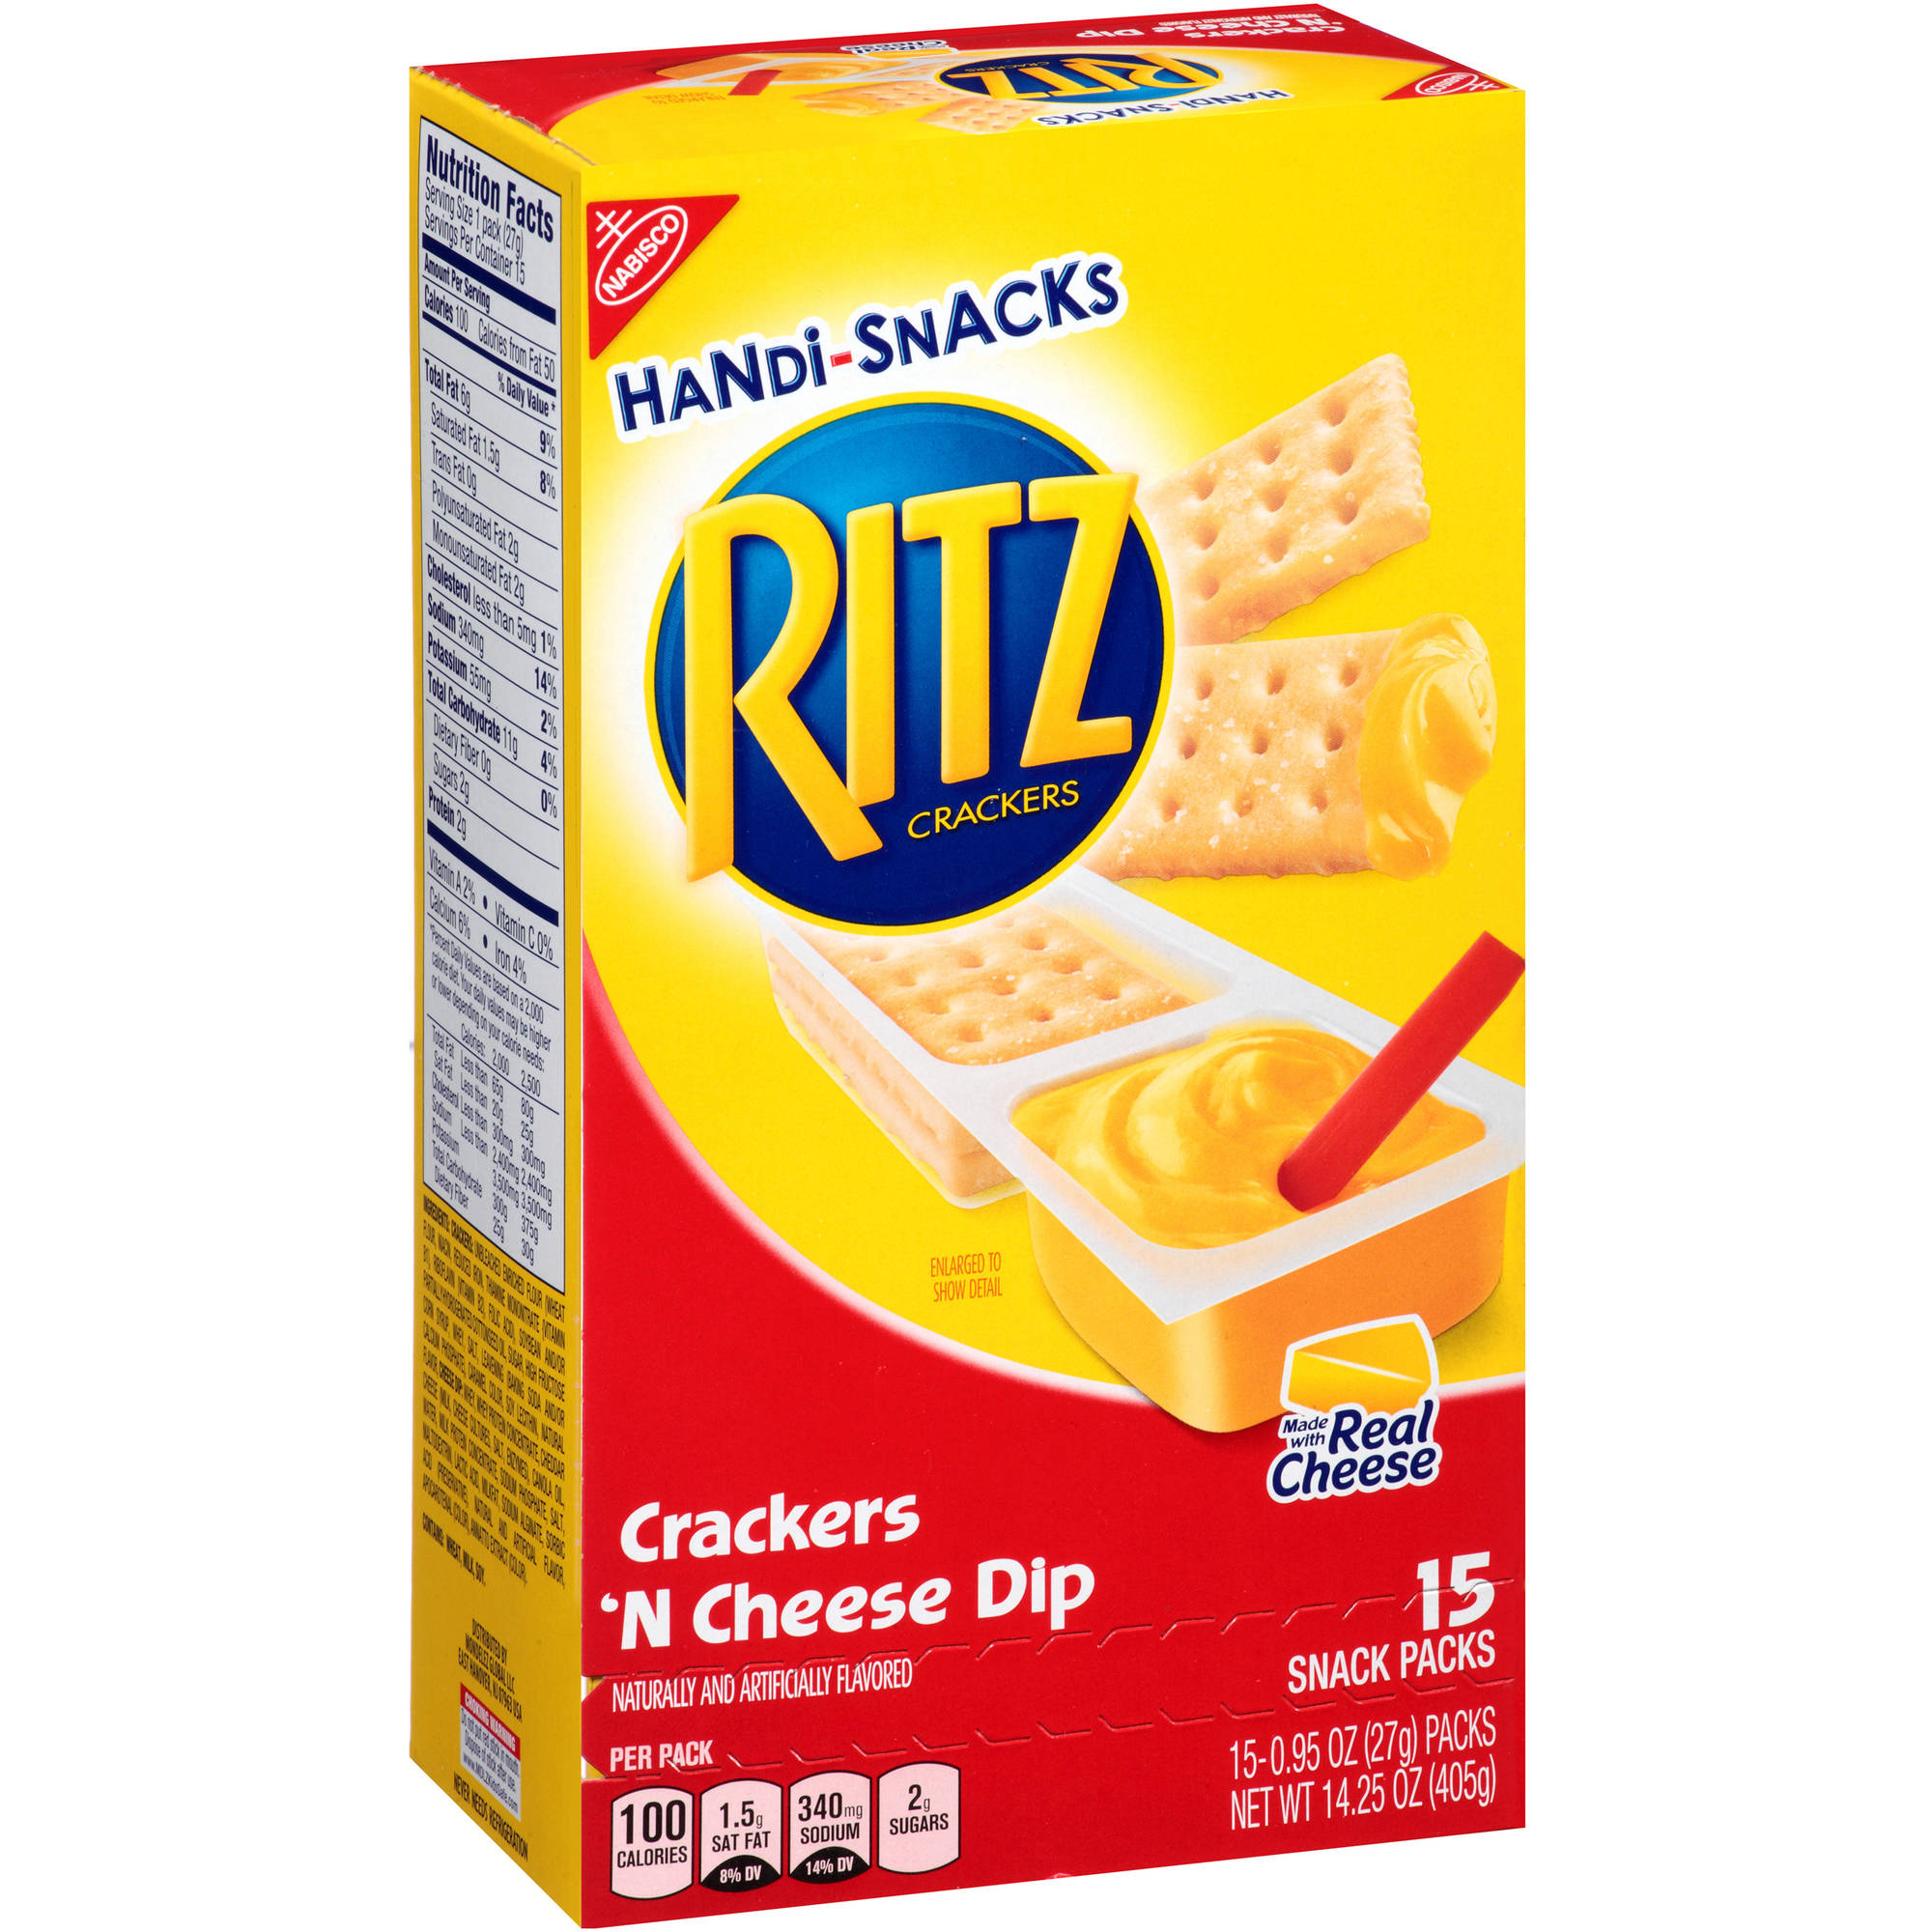 Nabisco Handi-Snacks Ritz Crackers 'n Cheese Dip, .95 oz, 15 count